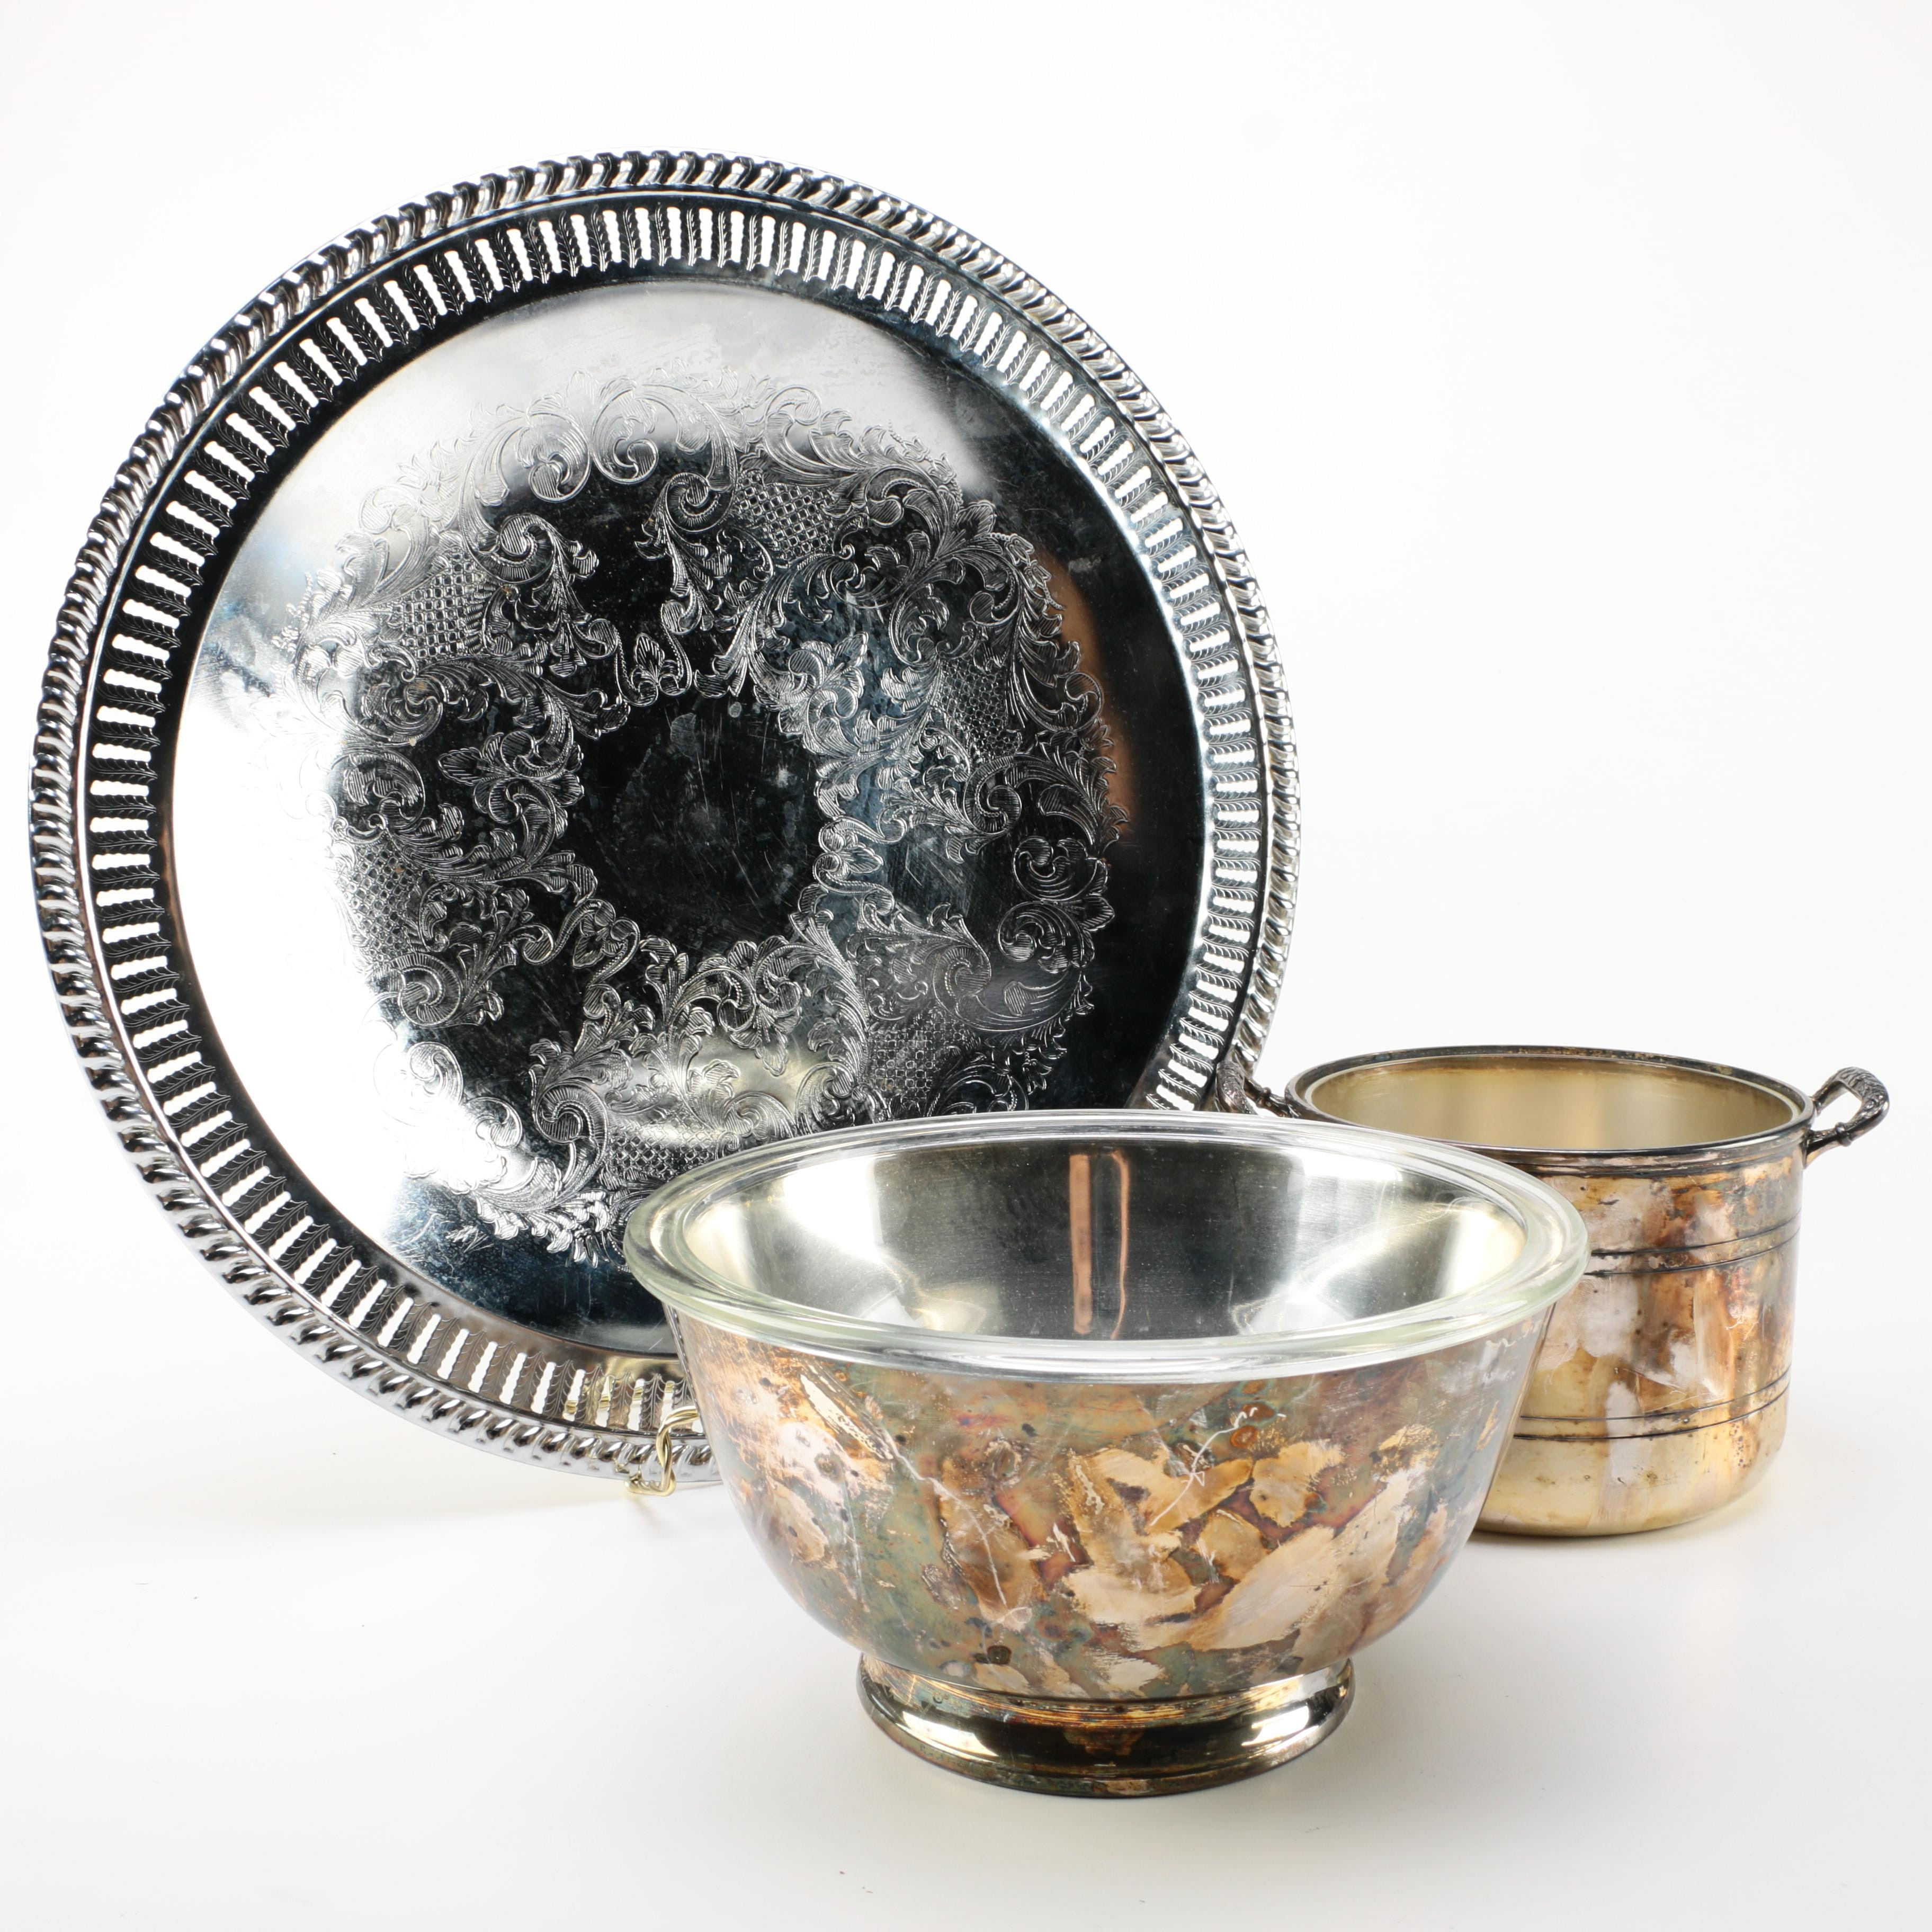 Silver Plate Bowls and Metal Serving Tray Featuring Reed & Barton